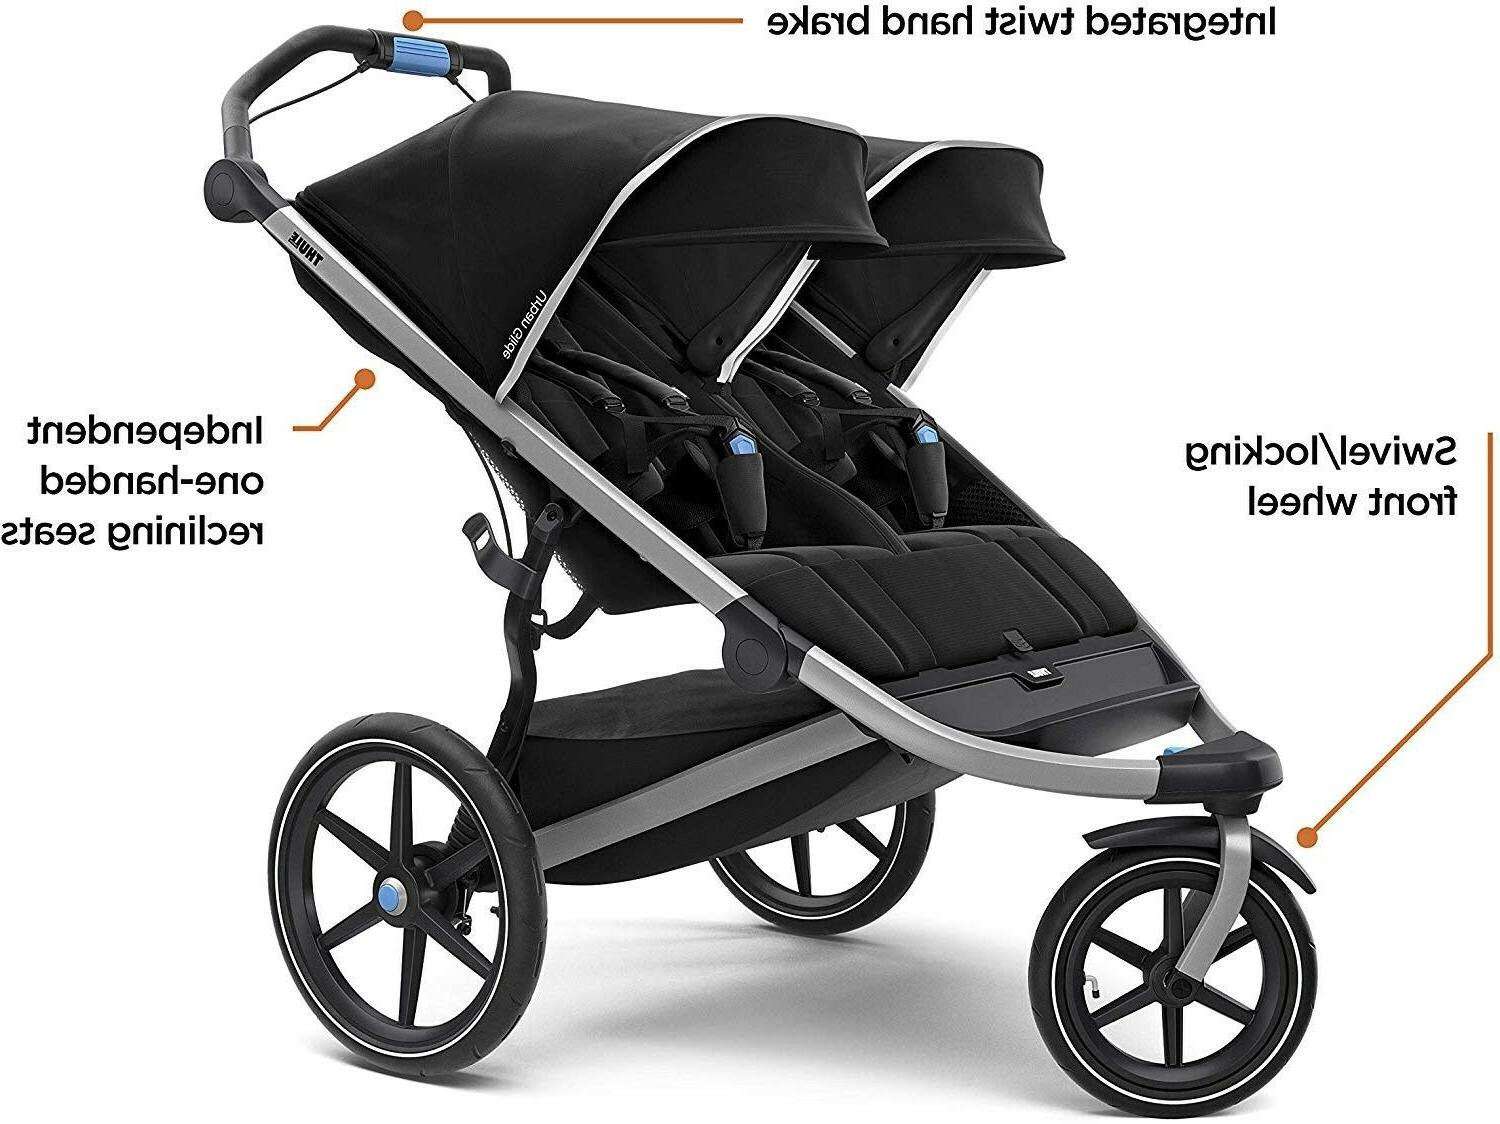 Baby Jogging Stroller Twins Center Playard Thule Travel System